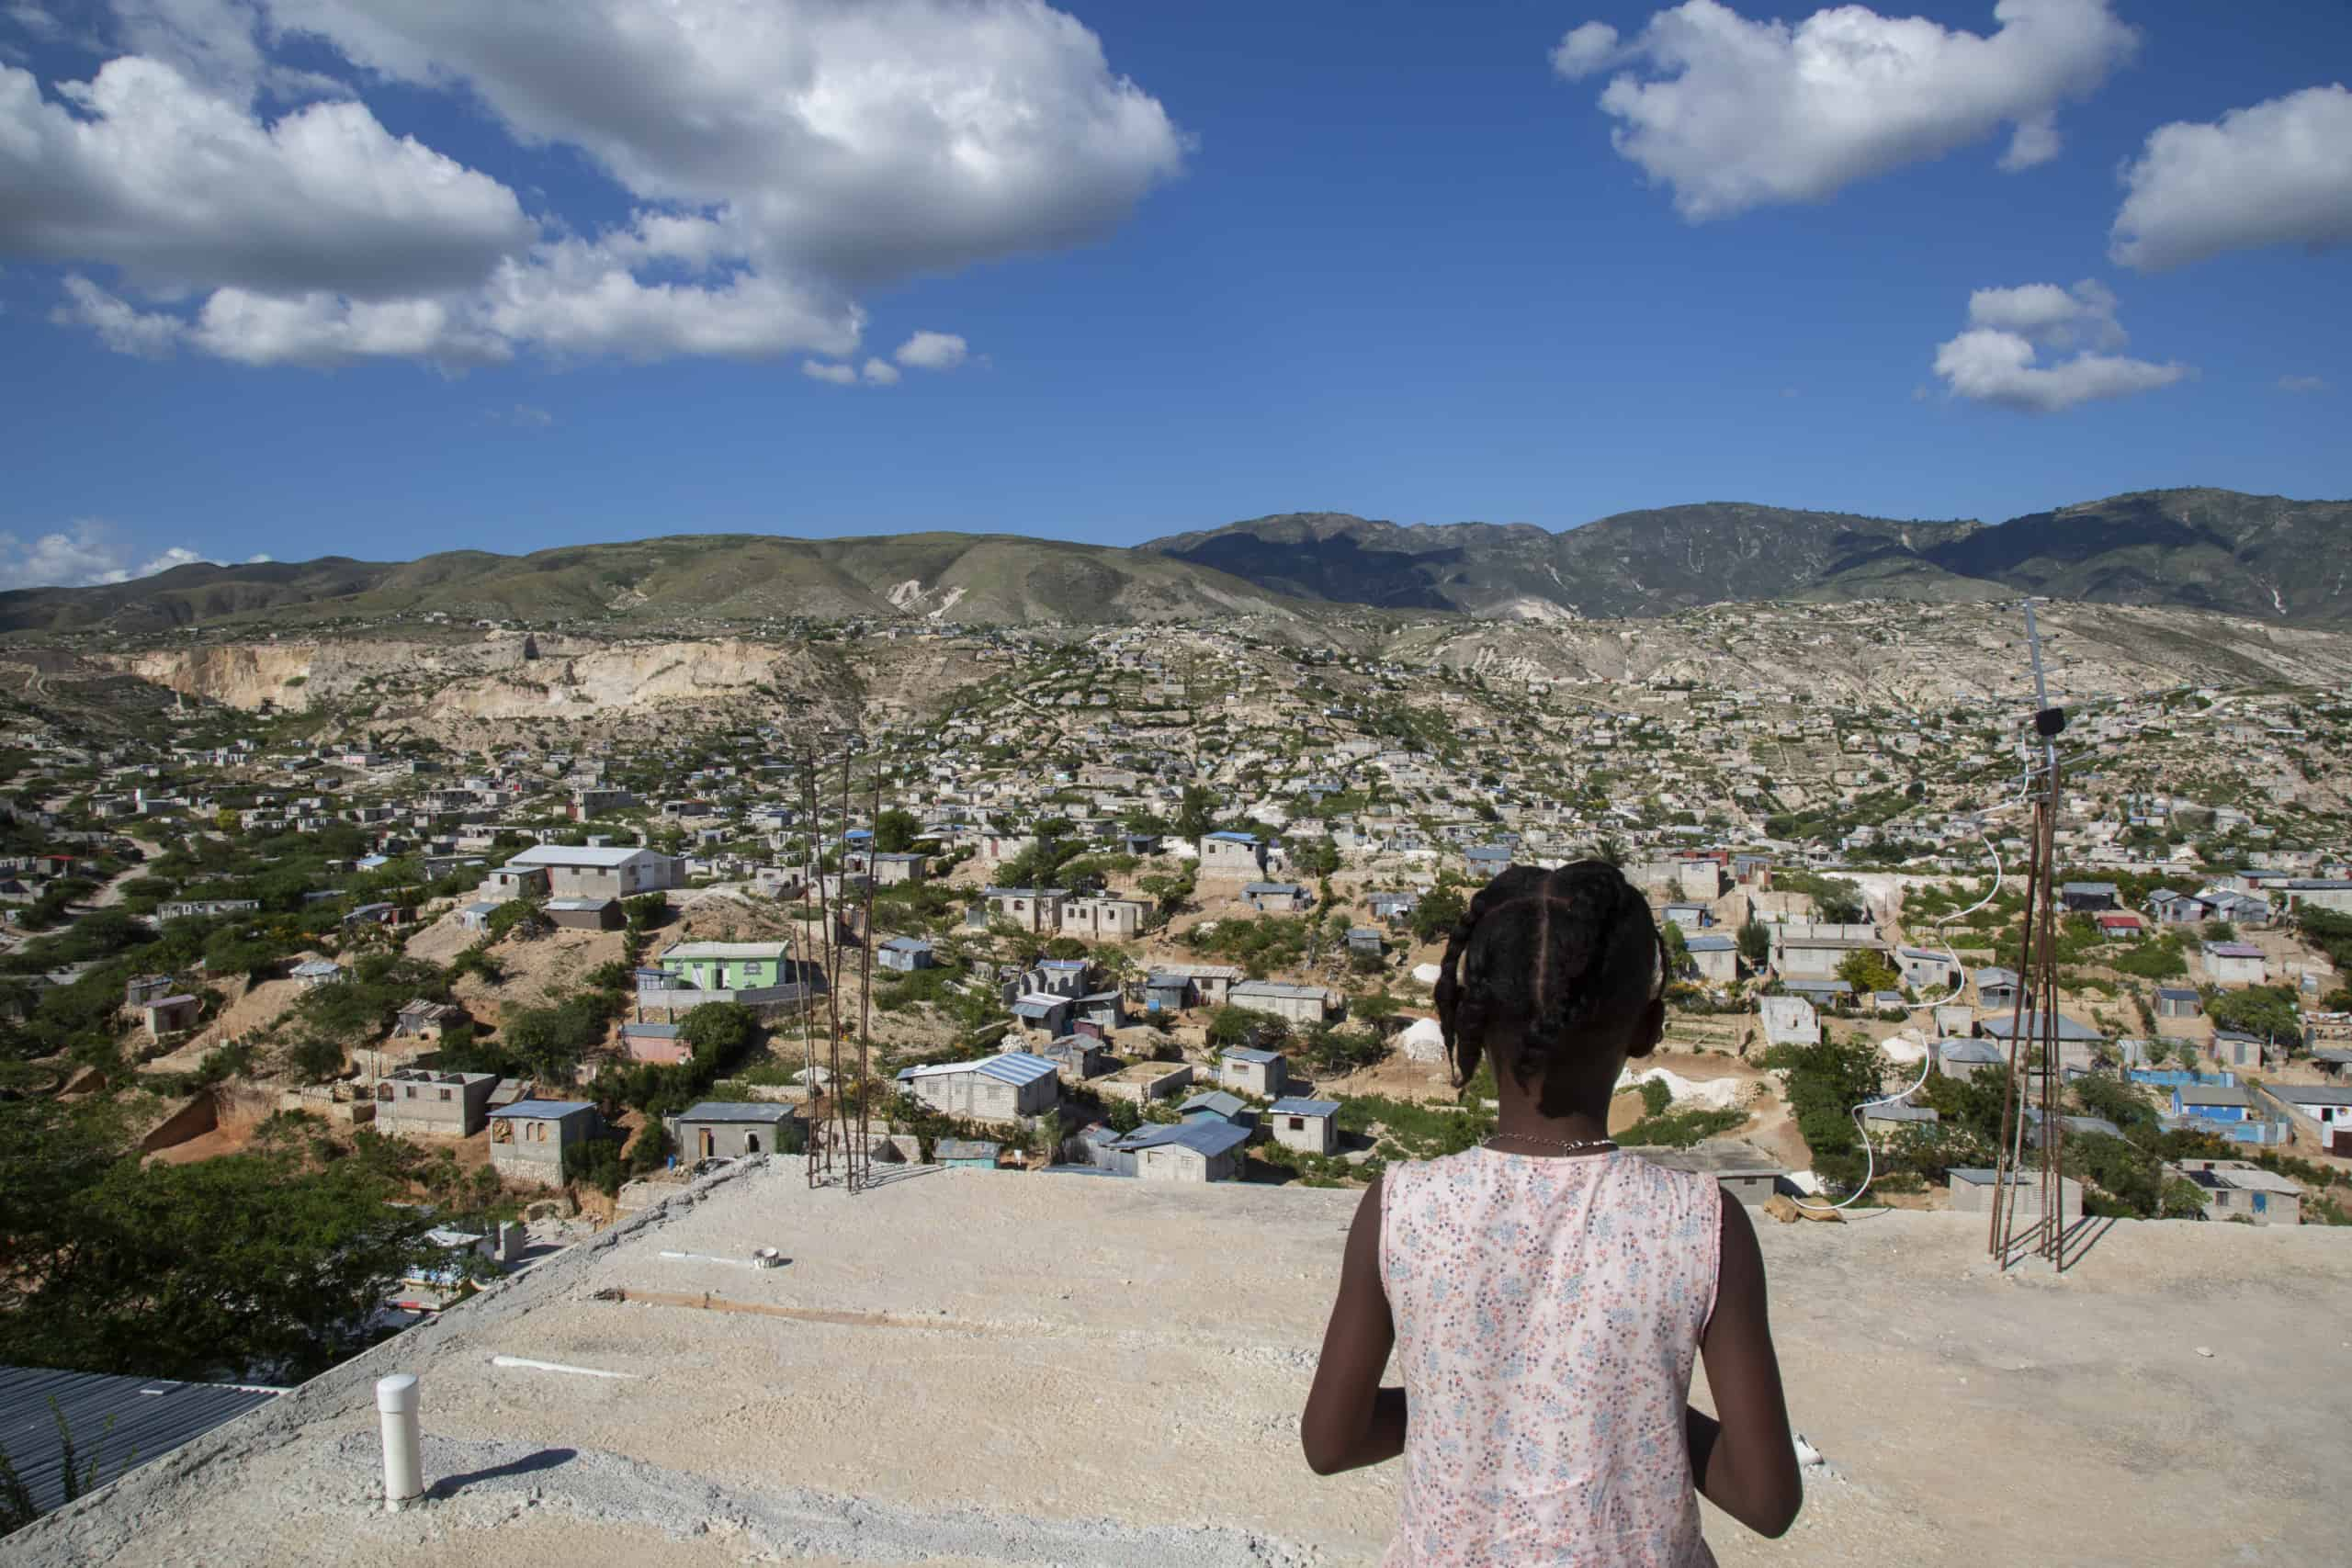 Revealed: Canada misrepresented conditions in Haiti to justify deportations, documents show